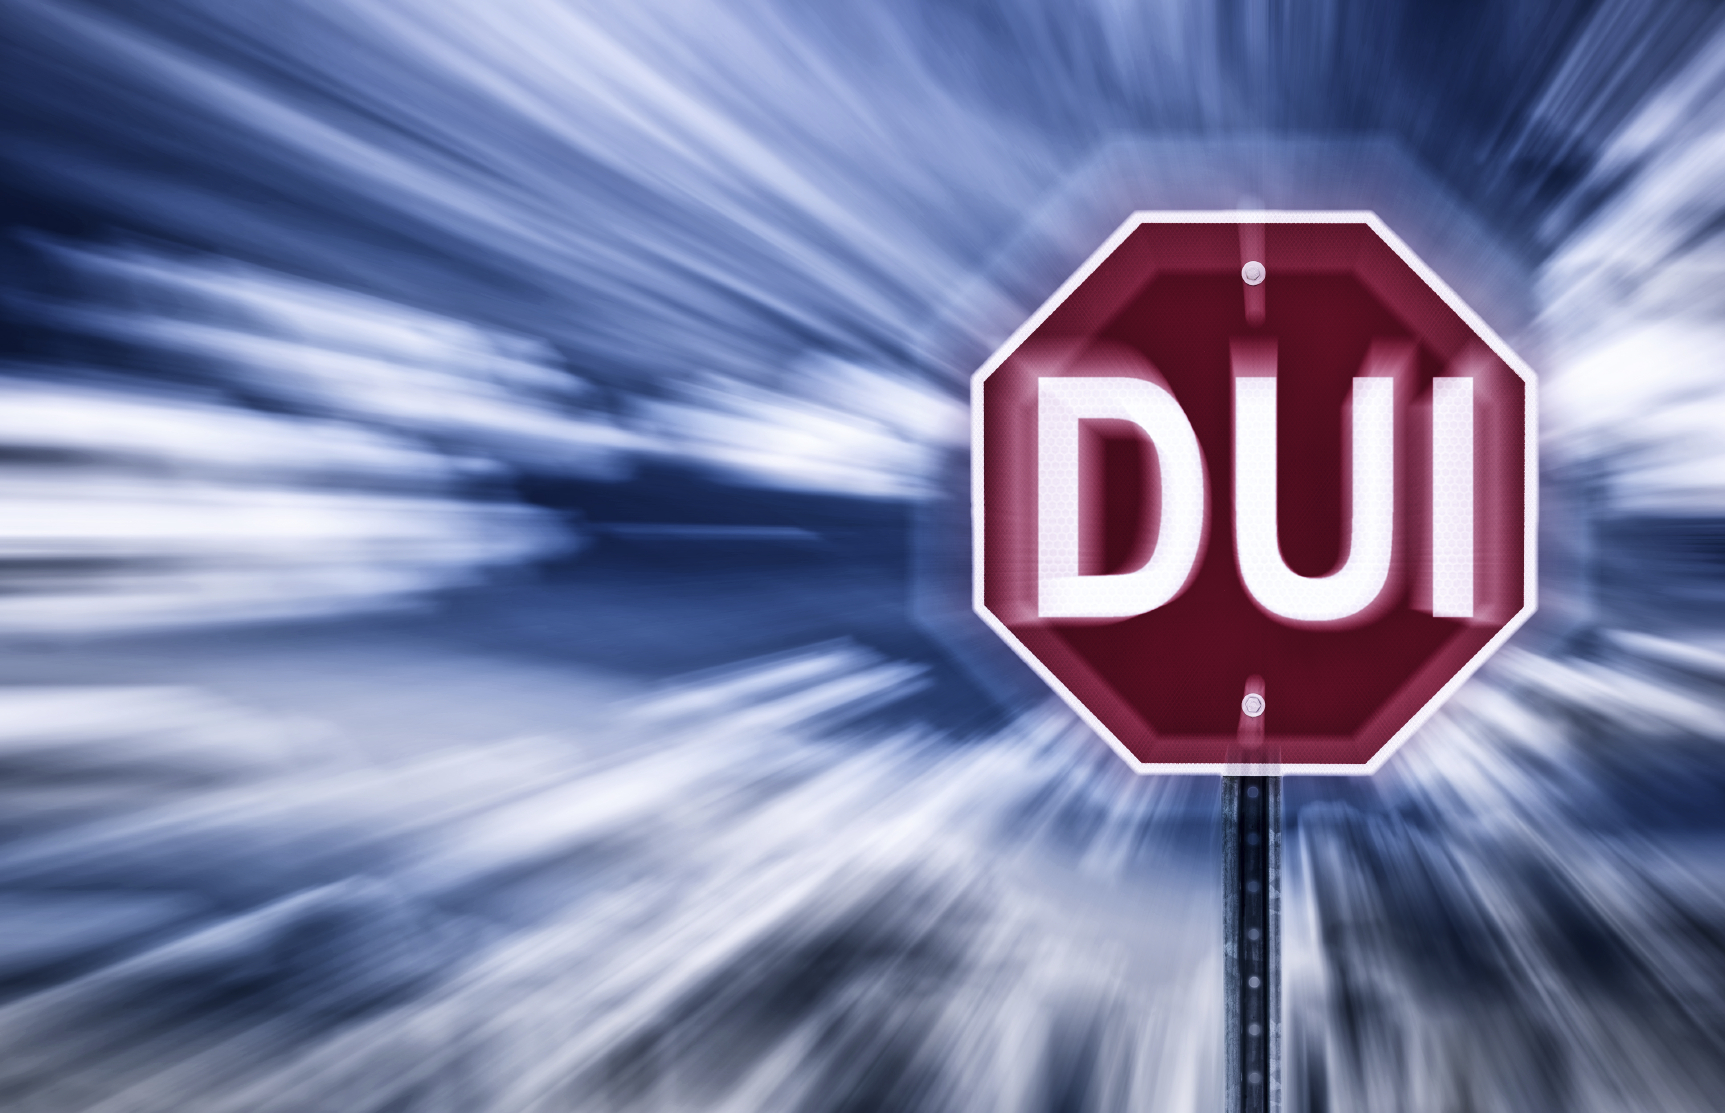 What to avoid doing when trying to get out of a DUI offense